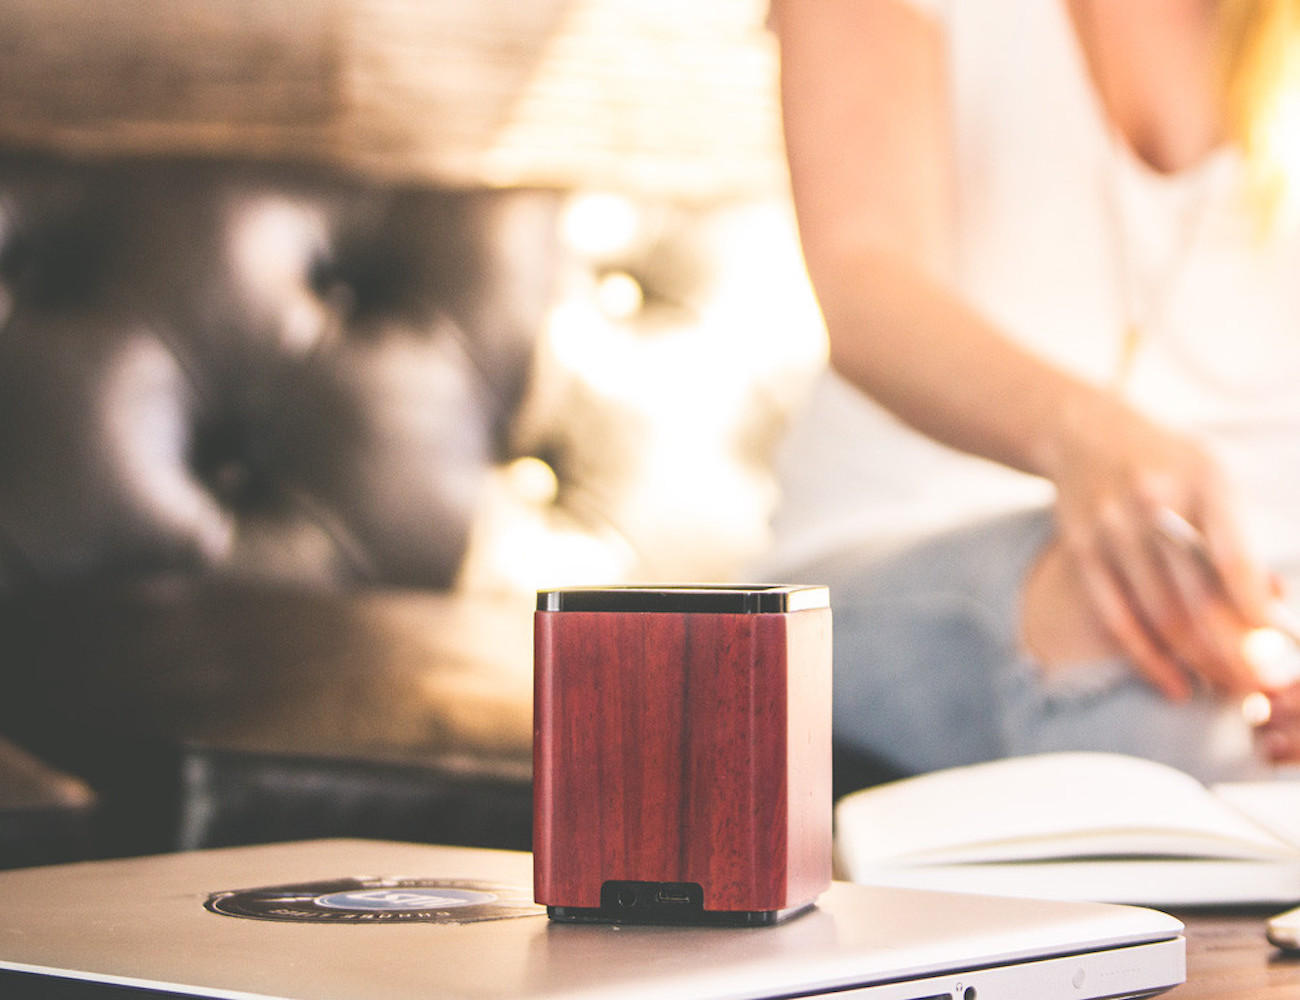 LSTN Satellite Portable Wood Speaker